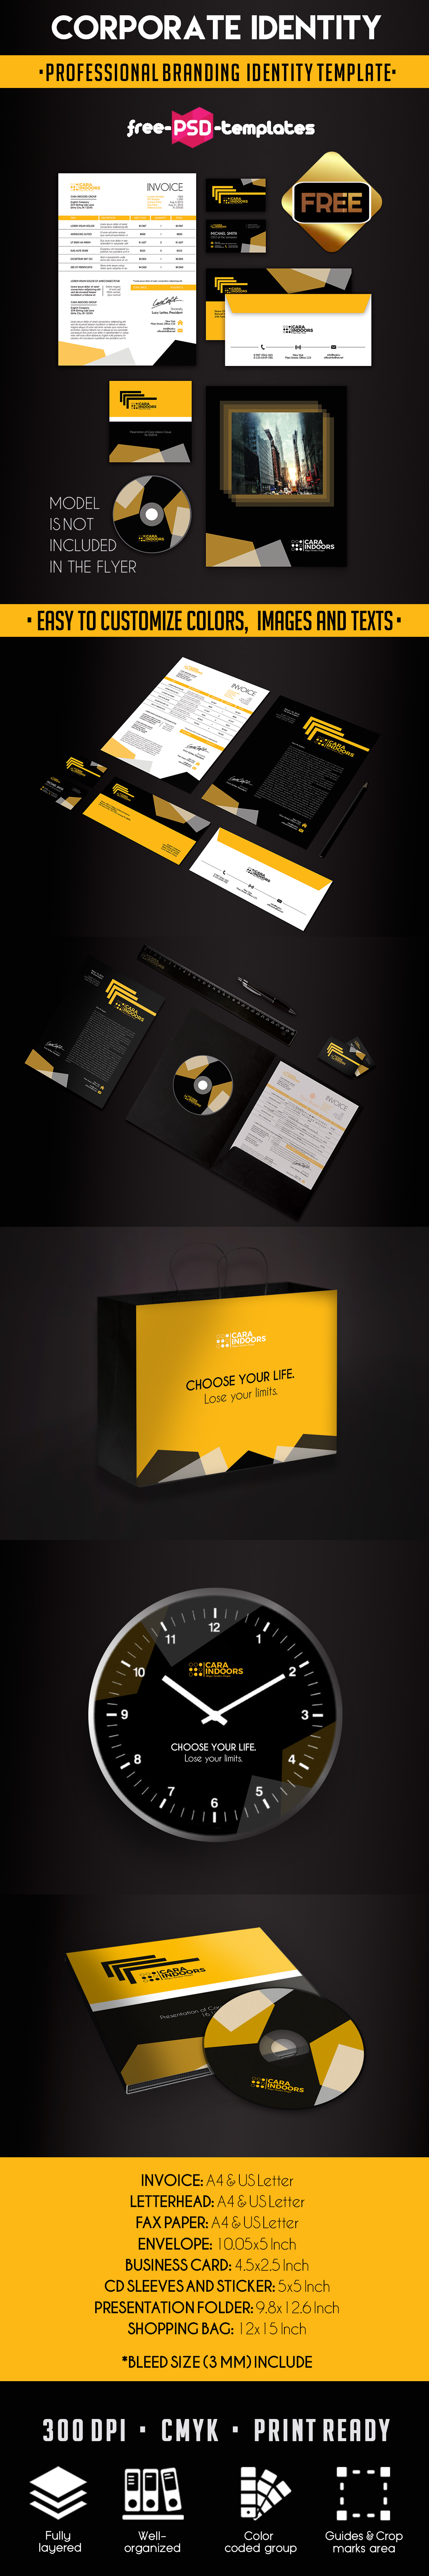 Bigpreview_corporate-identity-free-psd-templates